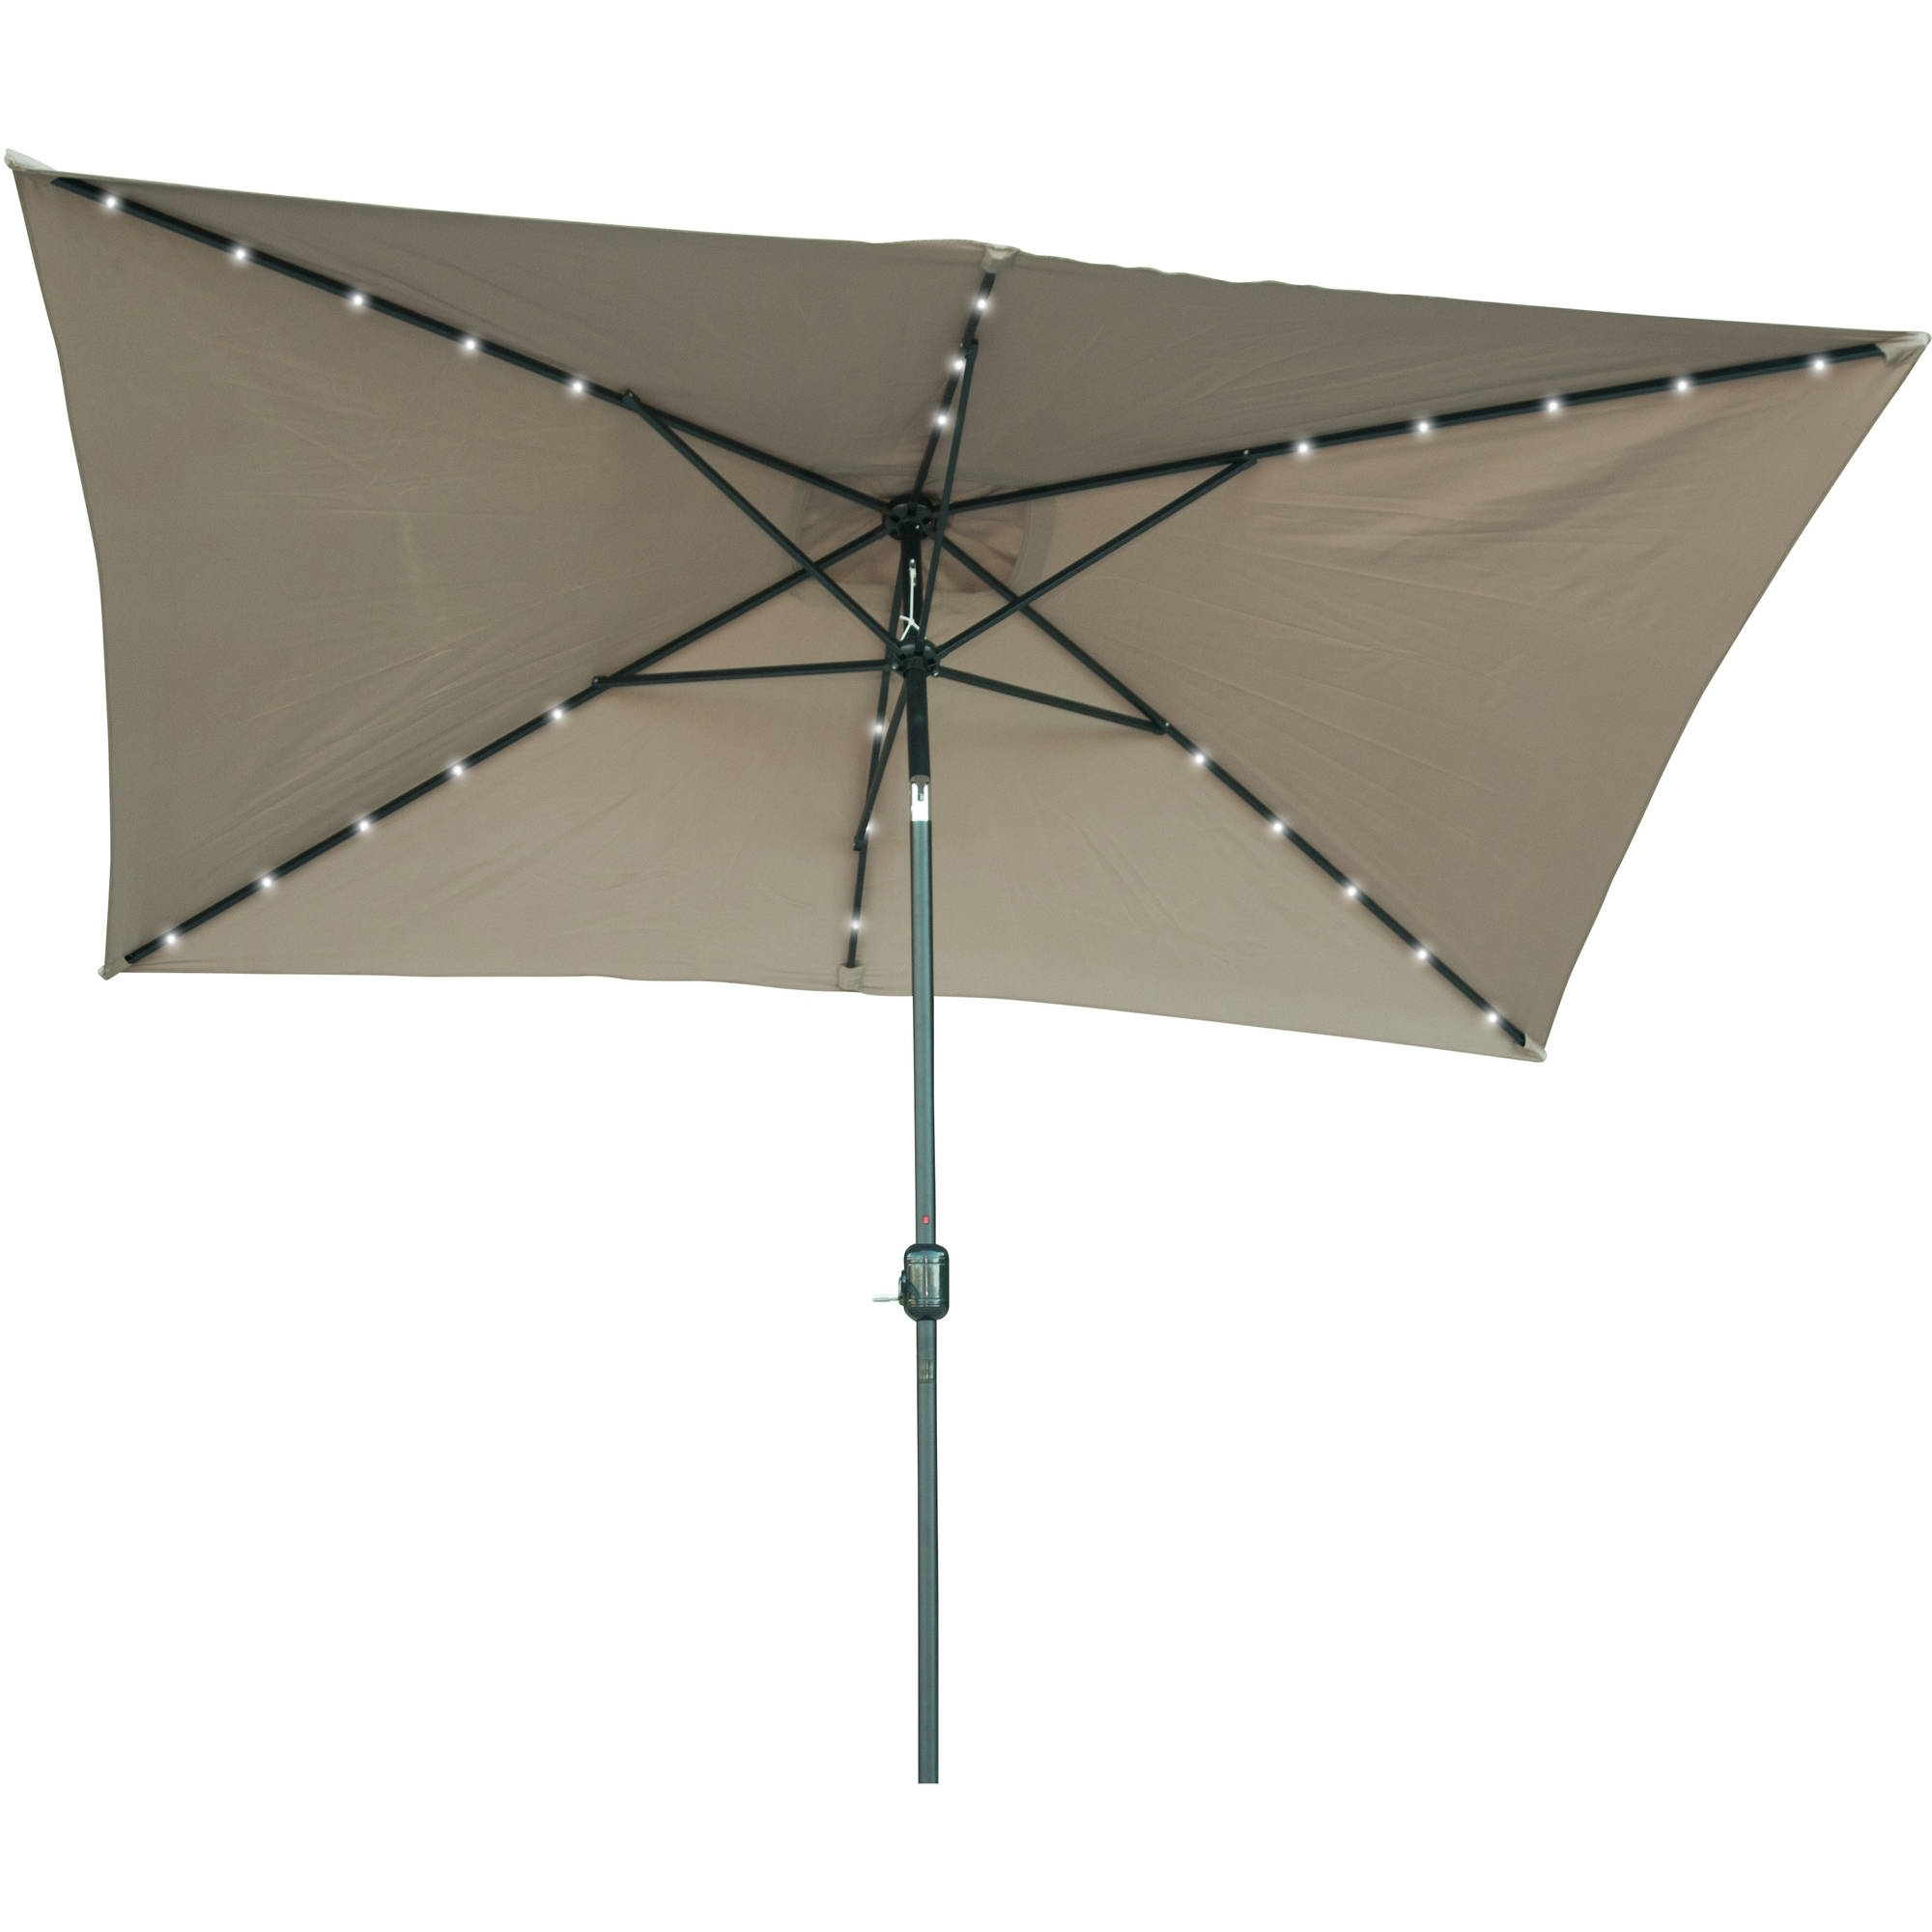 Led Patio Umbrellas Intended For Best And Newest Rectangular Solar Powered Led Lighted Patio Umbrella – 10' X (View 6 of 20)